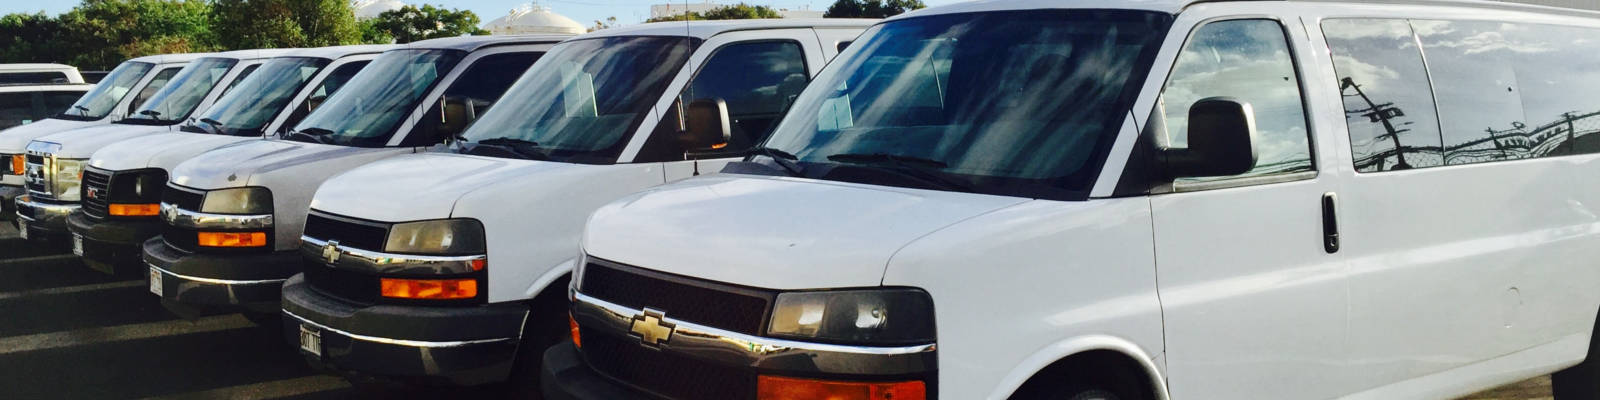 Passenger Van Rentals in Honolulu, Waikiki, and Oahu